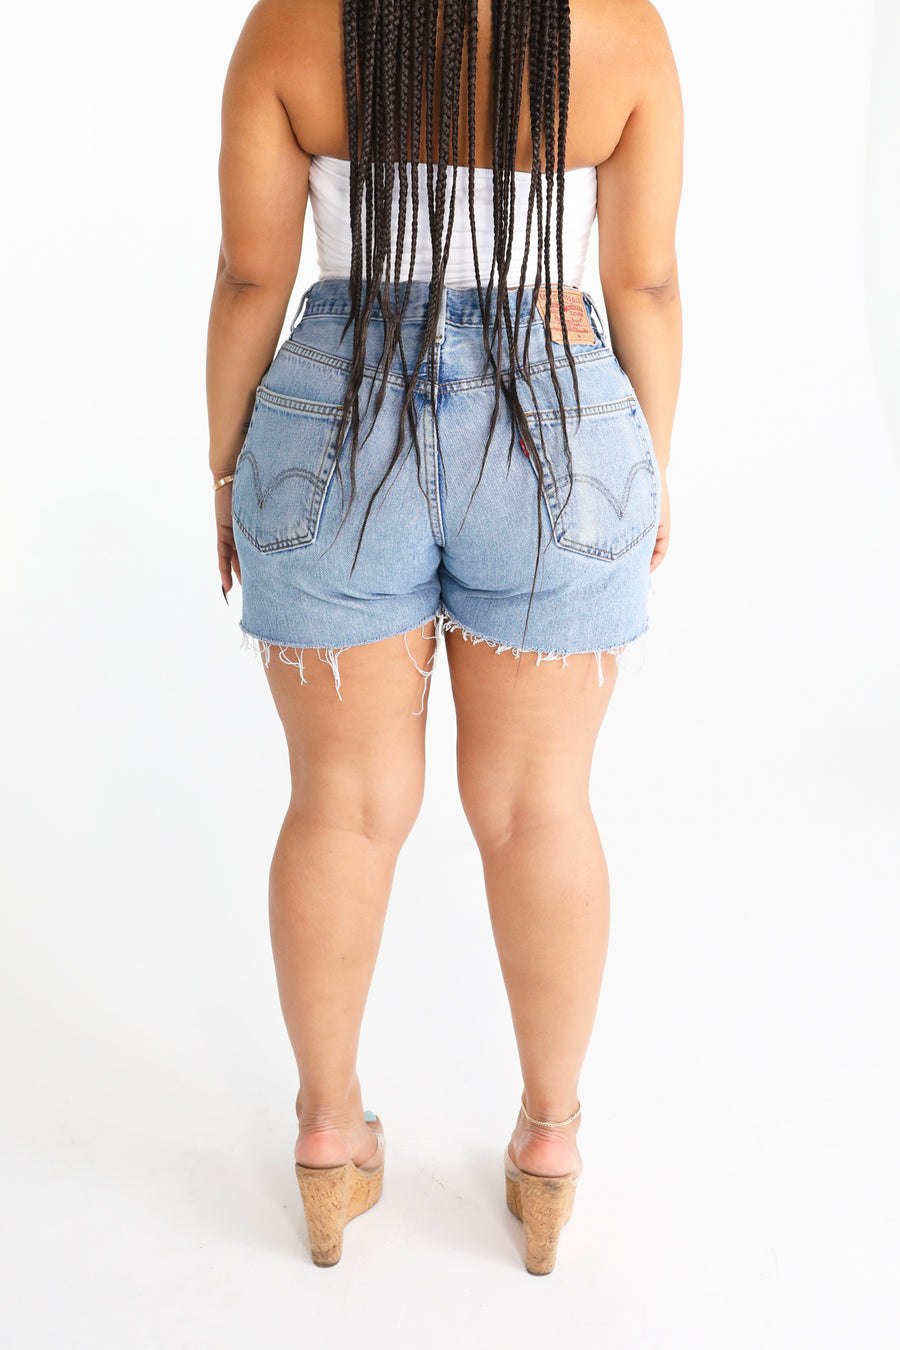 The High Waist Babe Denim Stretch Skirt - Babes And Felines | Specializing in Fashionable Staple Pieces for Every Shape and Size